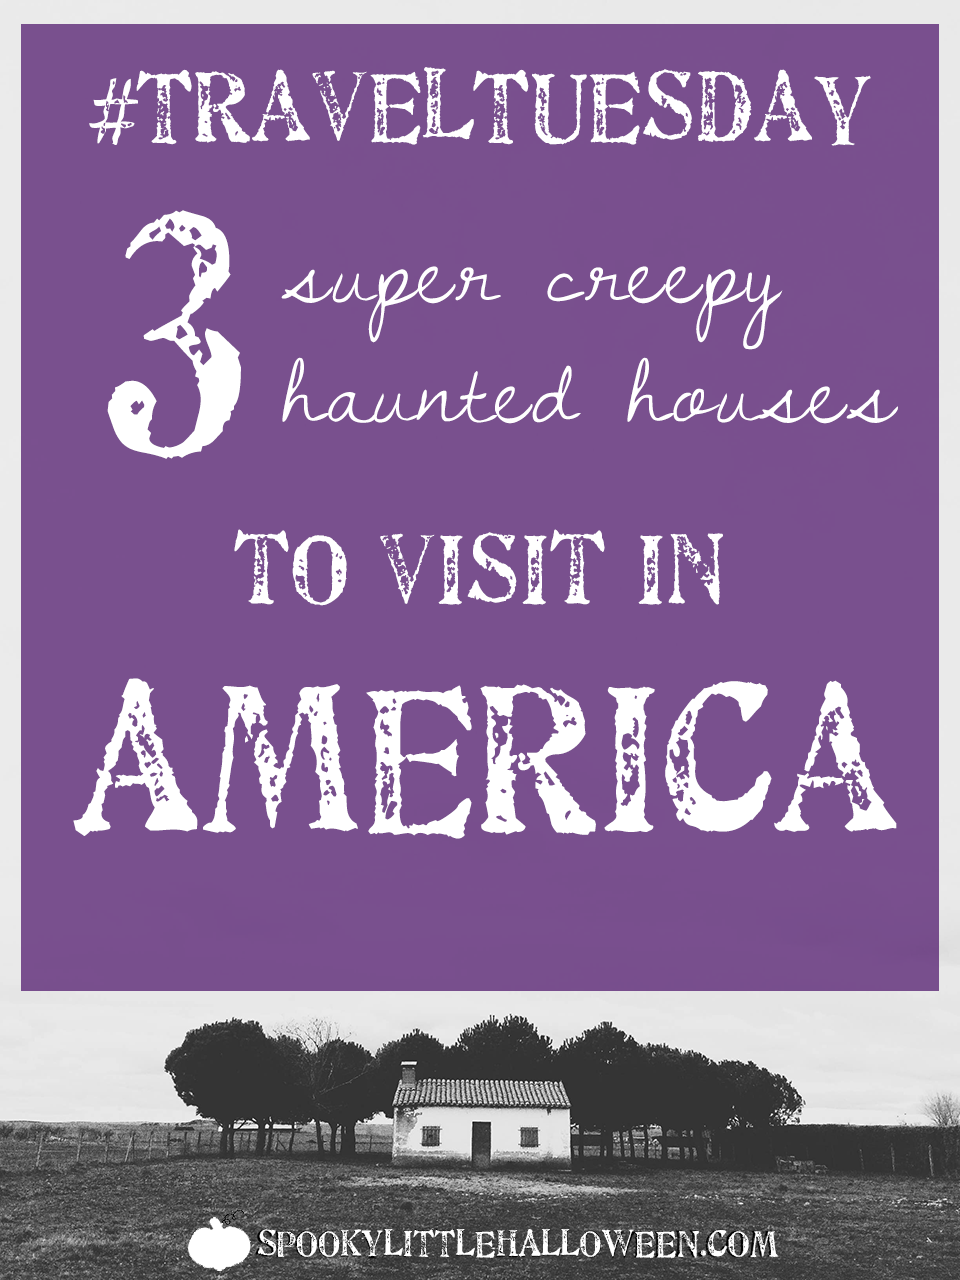 #TravelTuesday: 3 super creepy haunted houses to visit in America - Want to visit some of THE most haunted houses in America? Take a spin through three across the country in this week's #TravelTuesday post. | spookylittlehalloween.com